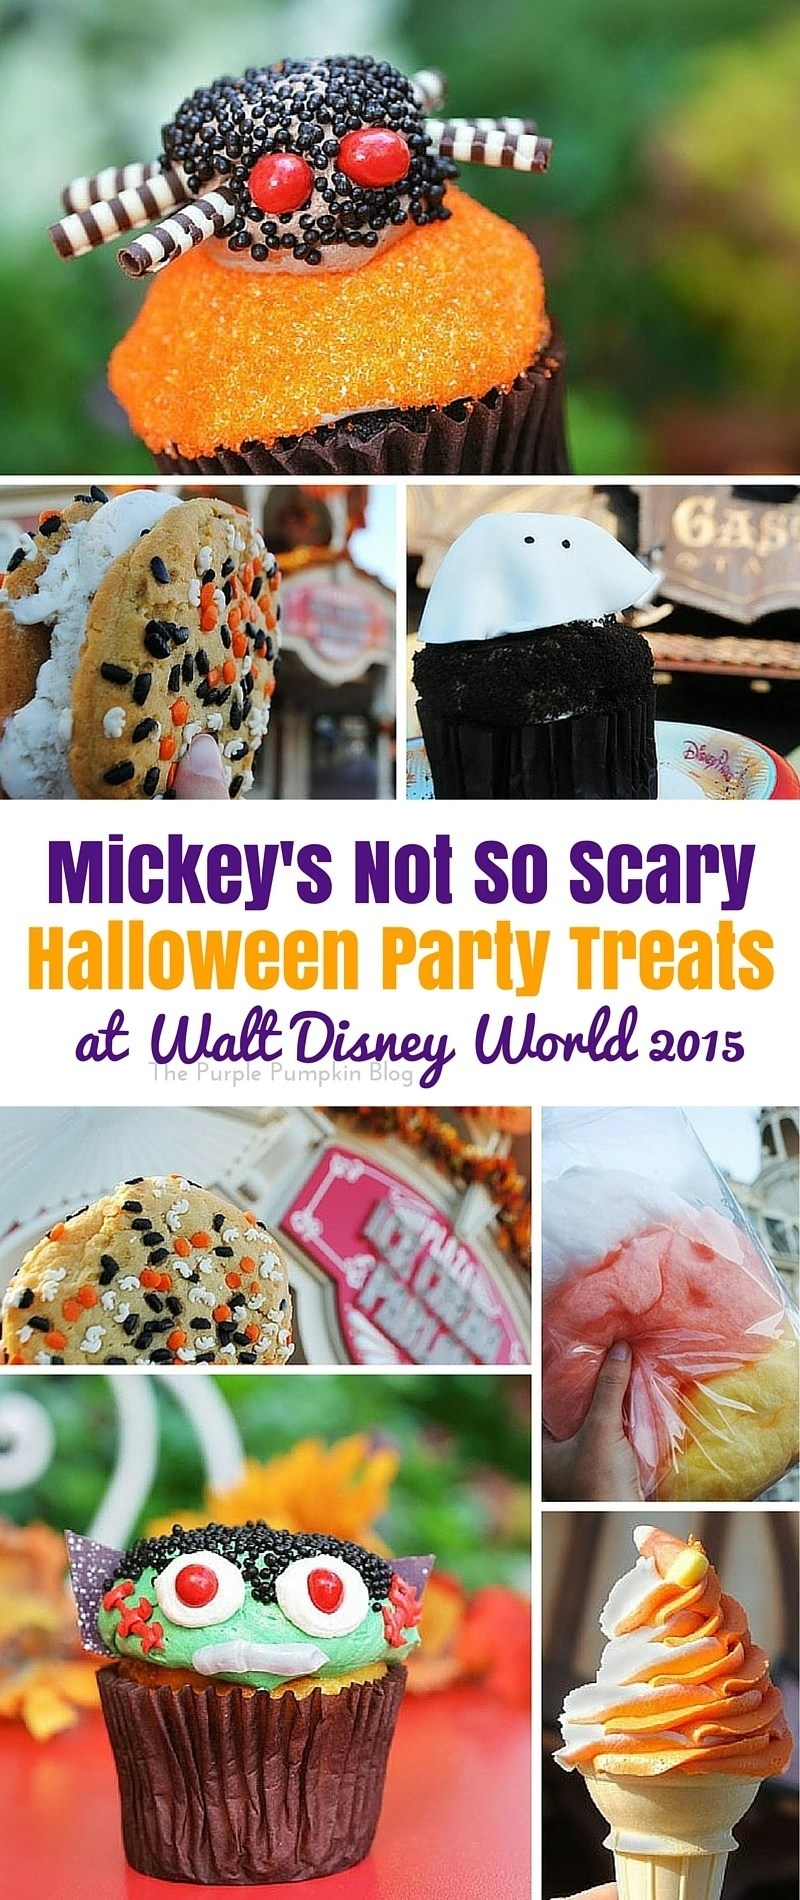 Mickey's Not So Scary Halloween Party Treats at Walt Disney World 2015